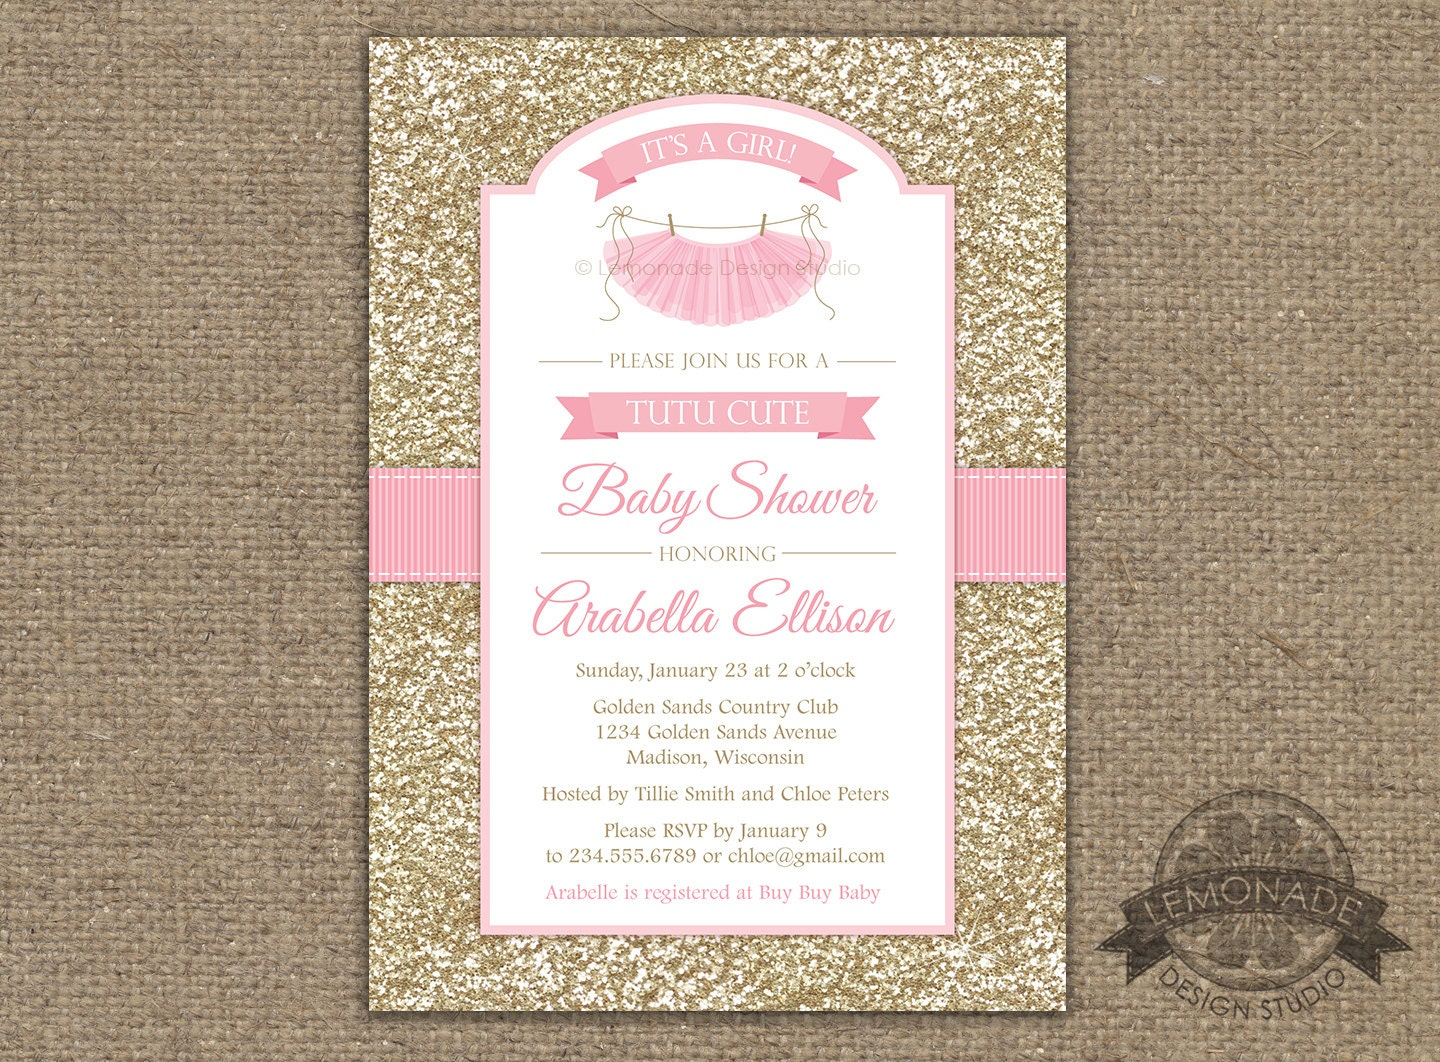 colors conjunction full and tutu zazzle colorss pink invitations of baby with gold in diy size shower